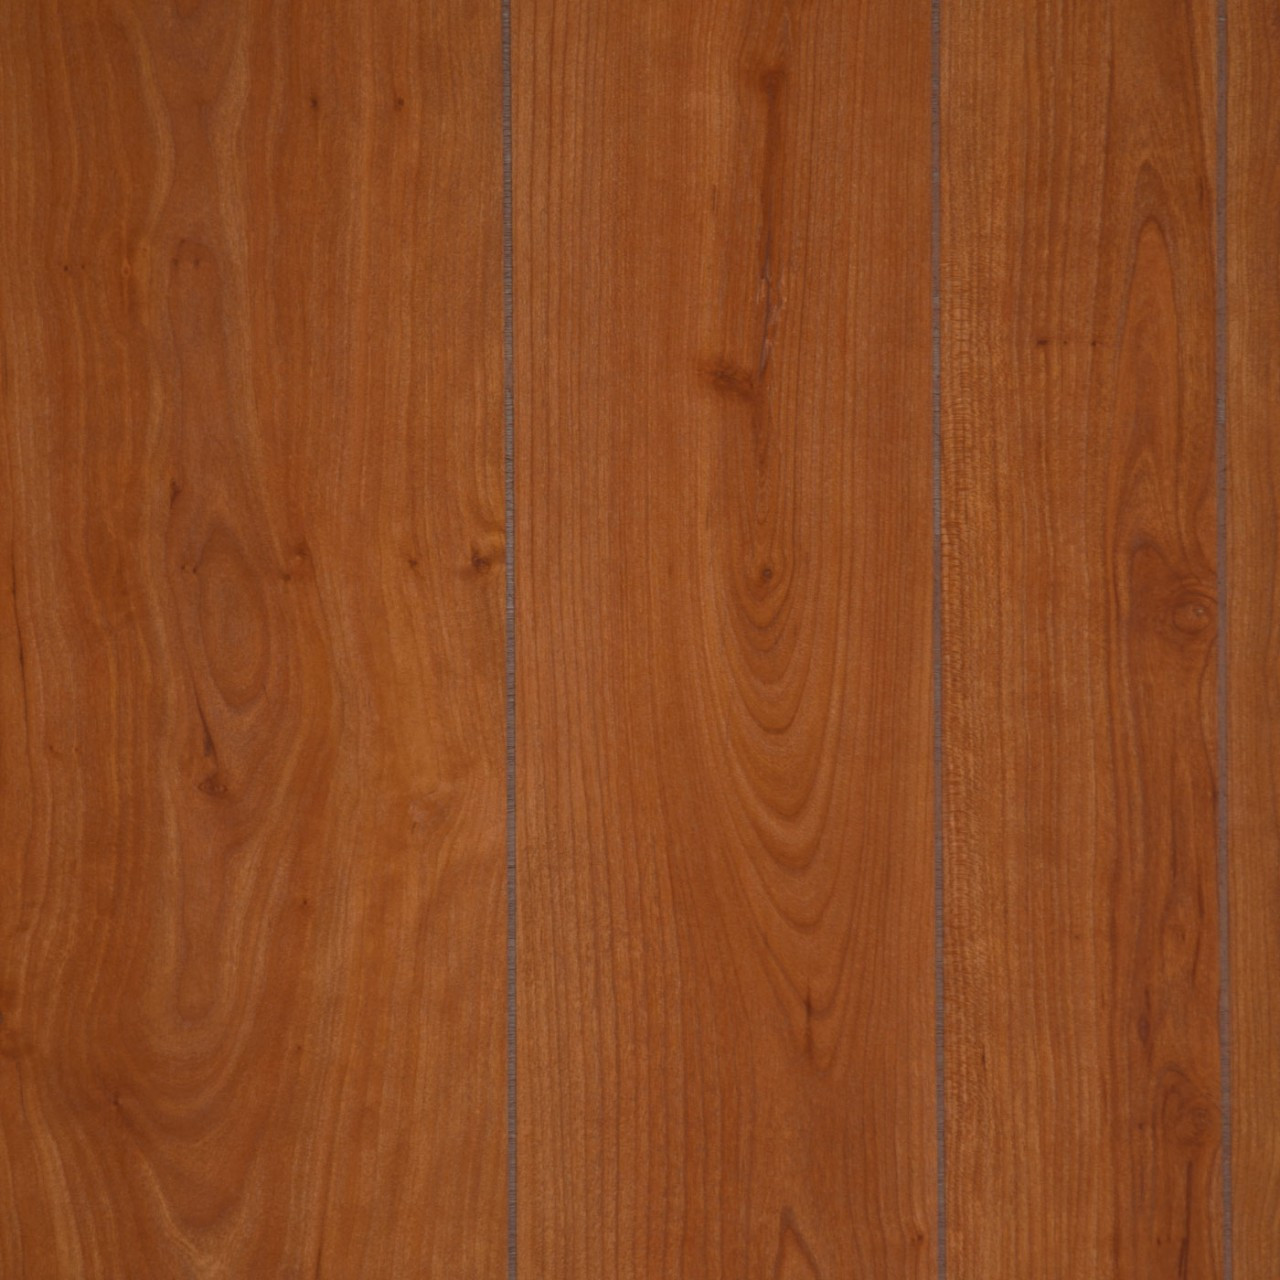 Wood Paneling Walton Cherry Plywood Planks